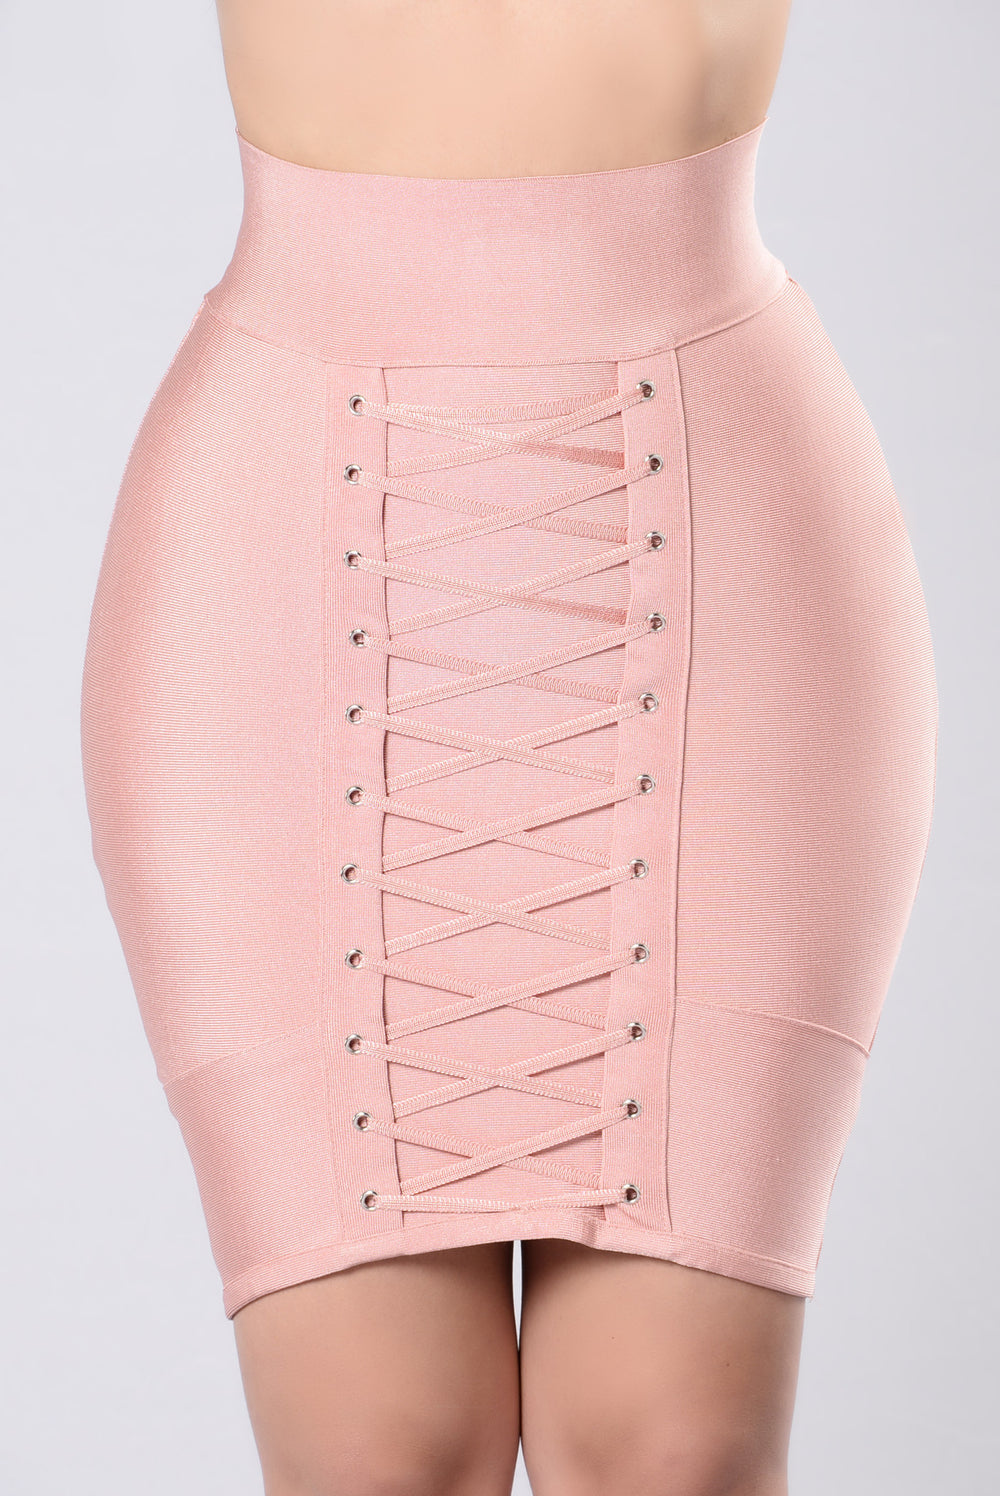 Fully Exposed Skirt - Blush